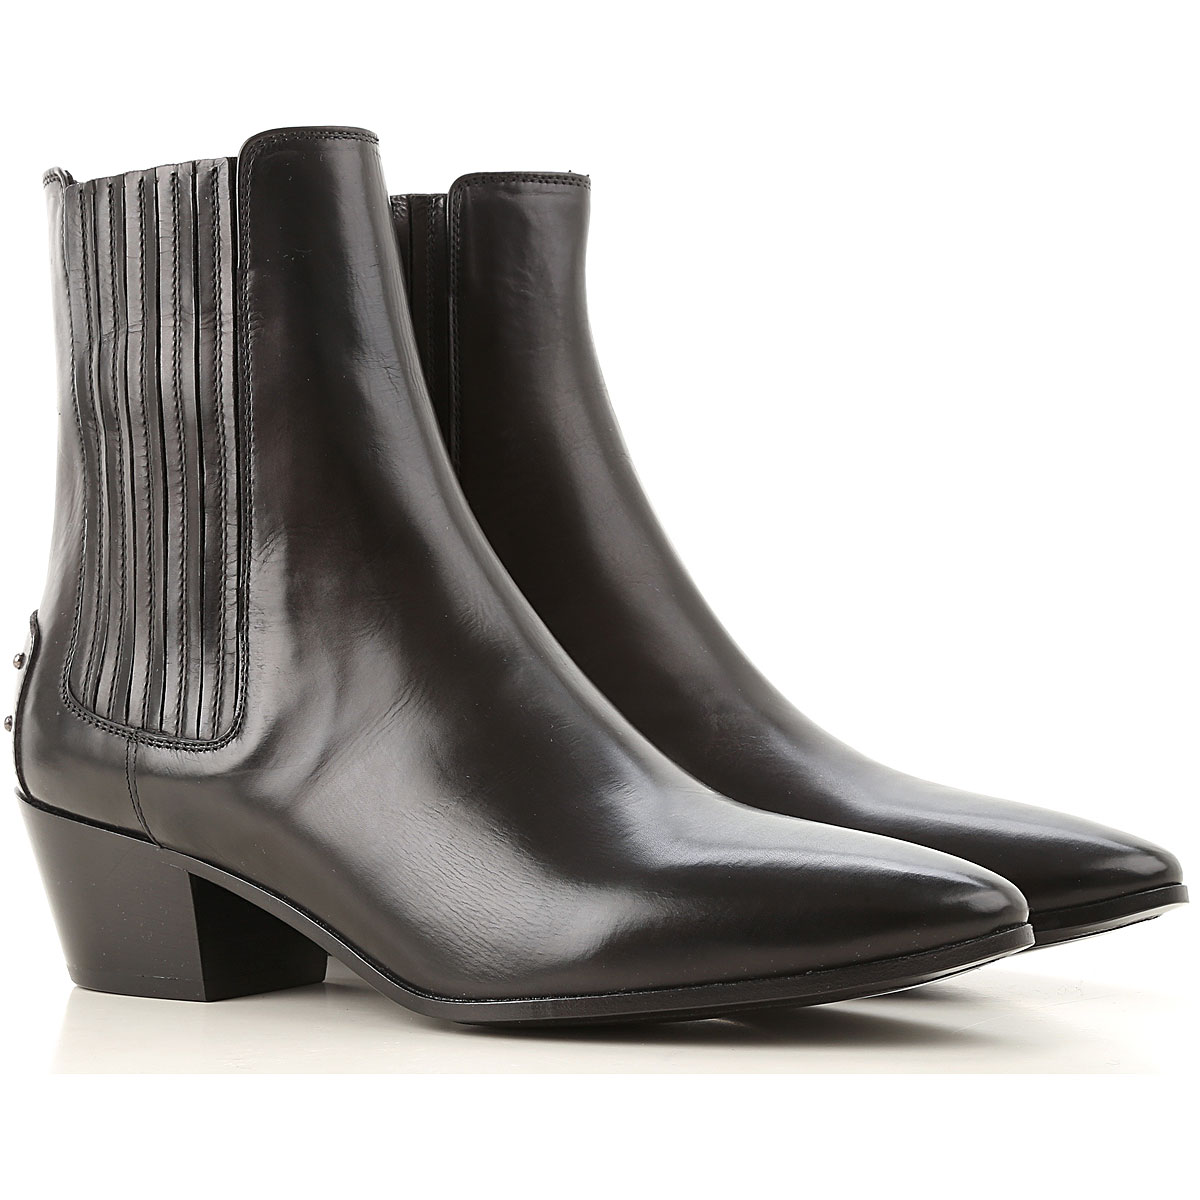 Yves Saint Laurent Chelsea Boots for Women On Sale, Black, Leather, 2019, 11 6 7